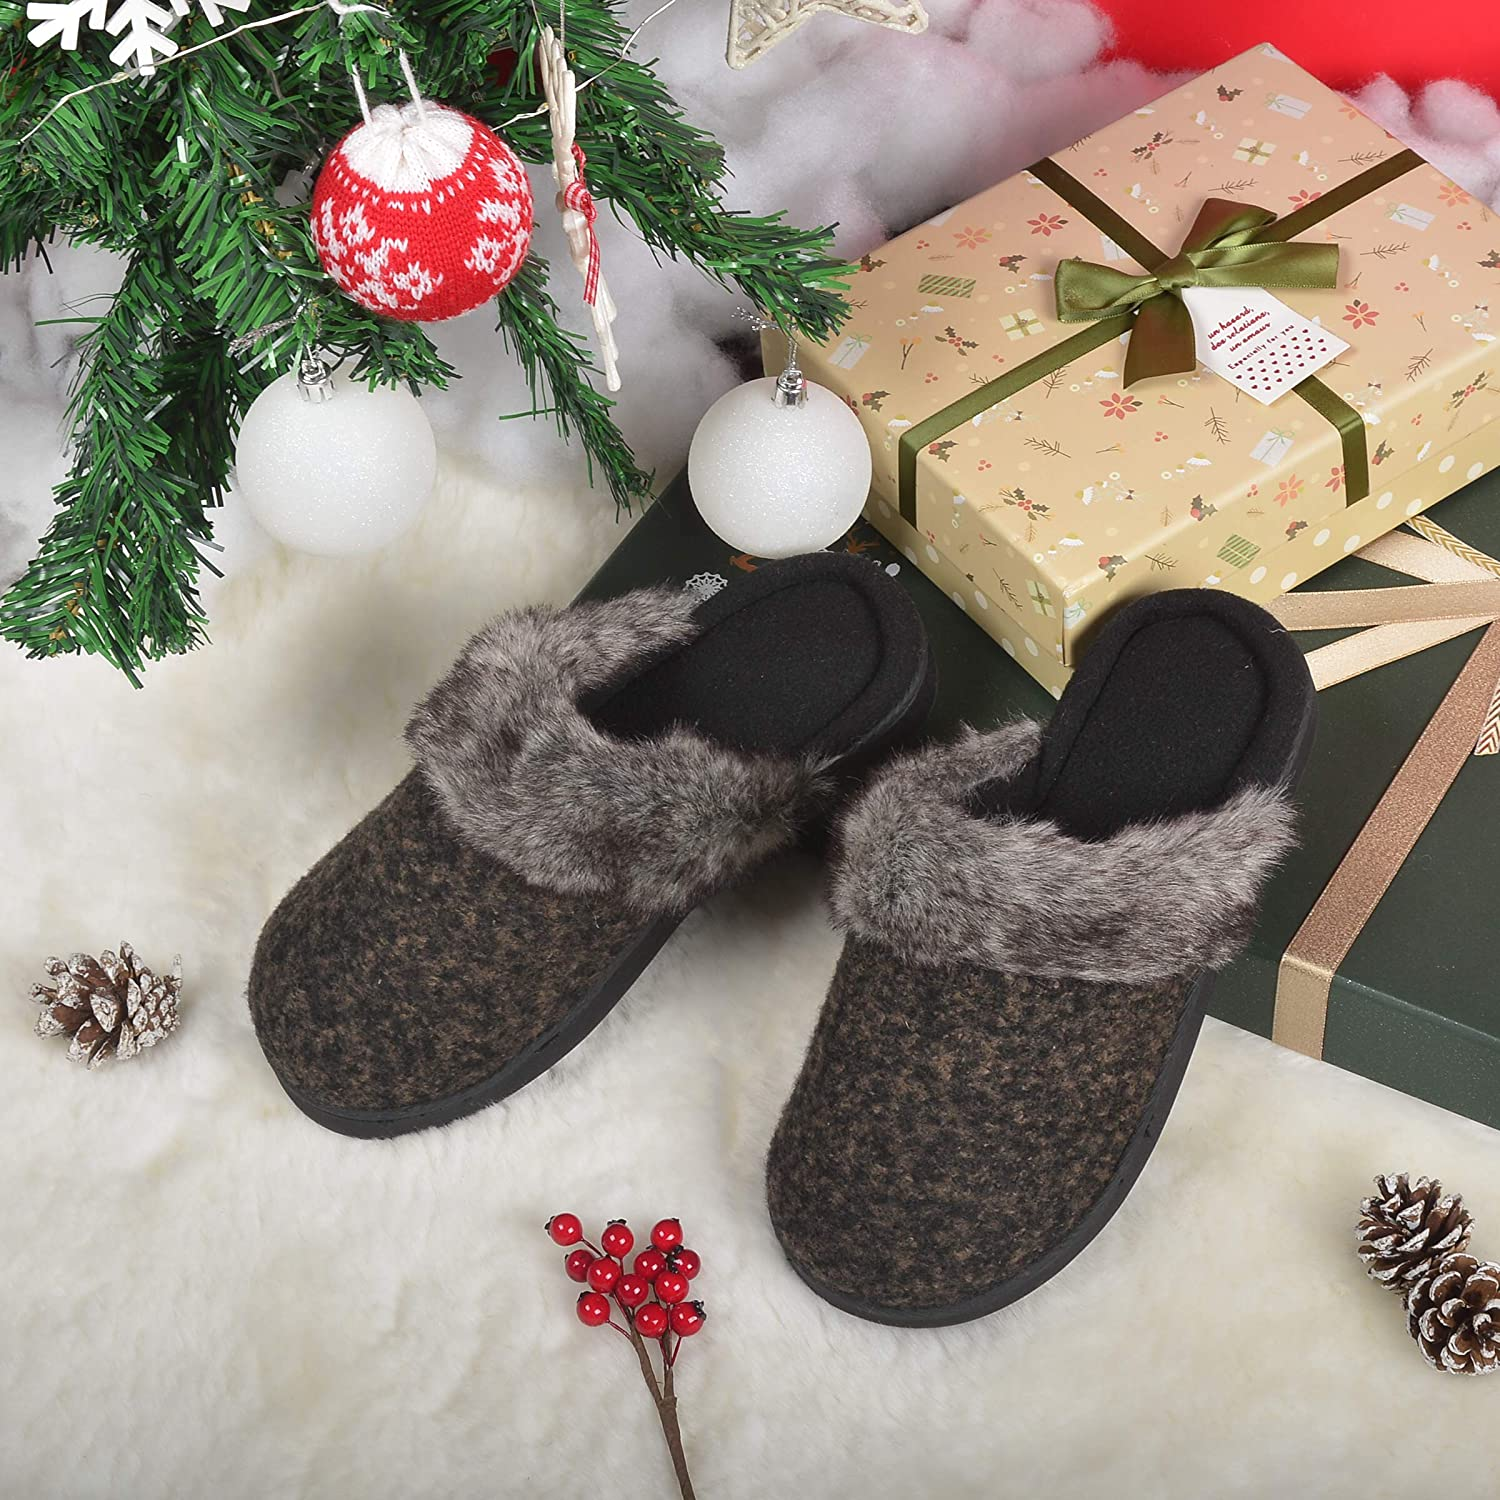 ULTRAIDEAS Womens Comfort Memory Foam Slippers Wool Blend Fuzzy Coral Fleece Lined Slip on House Shoes with Indoor Outdoor Anti-Skid Rubber Sole